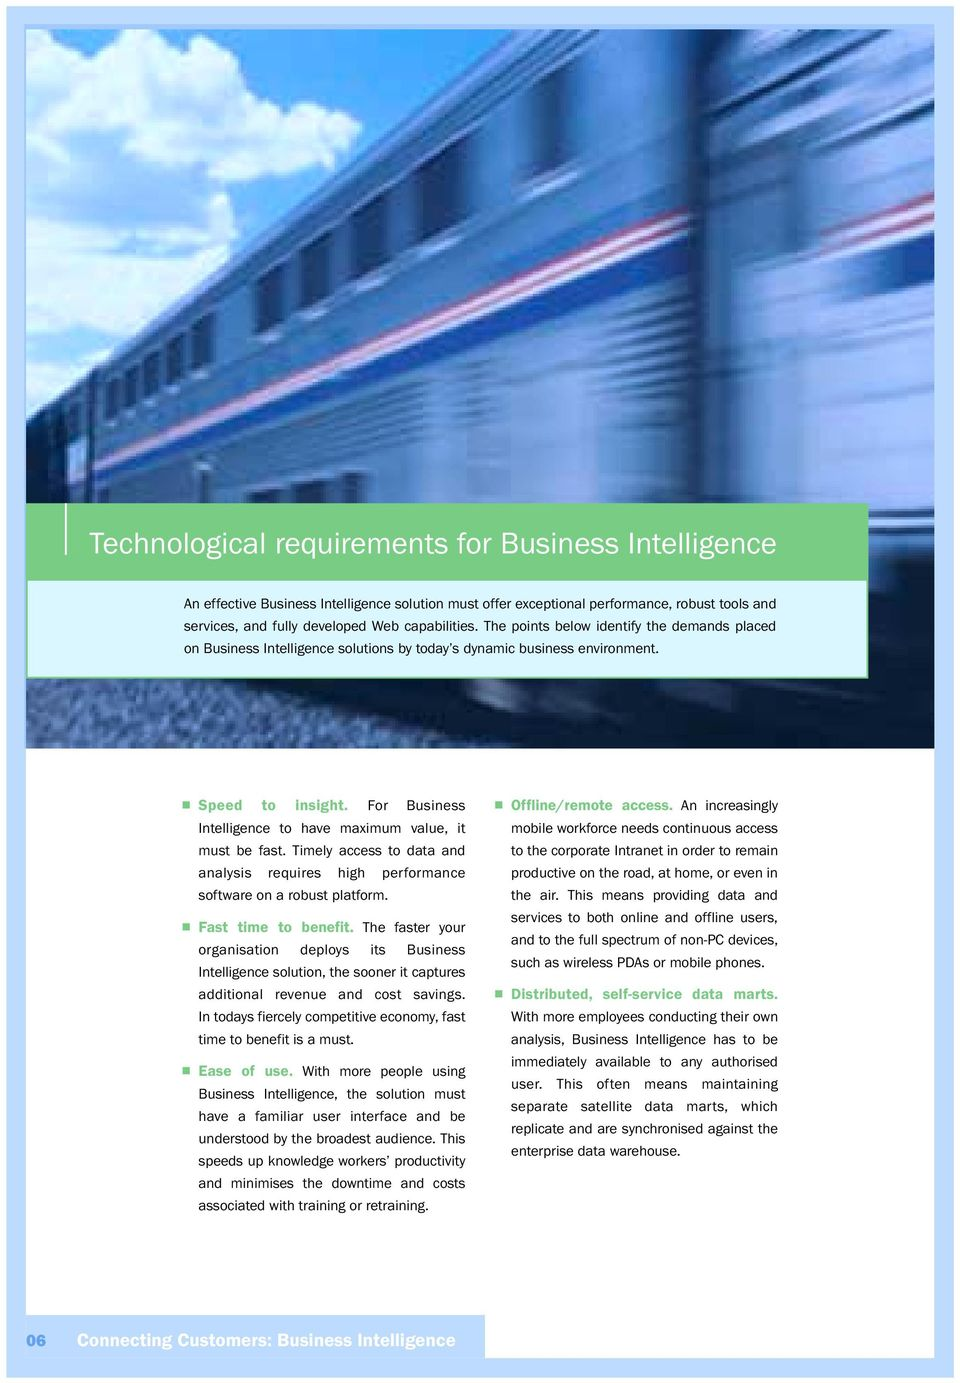 For Business Intelligence to have maximum value, it must be fast. Timely access to data and analysis requires high performance software on a robust platform. Fast time to benefit.